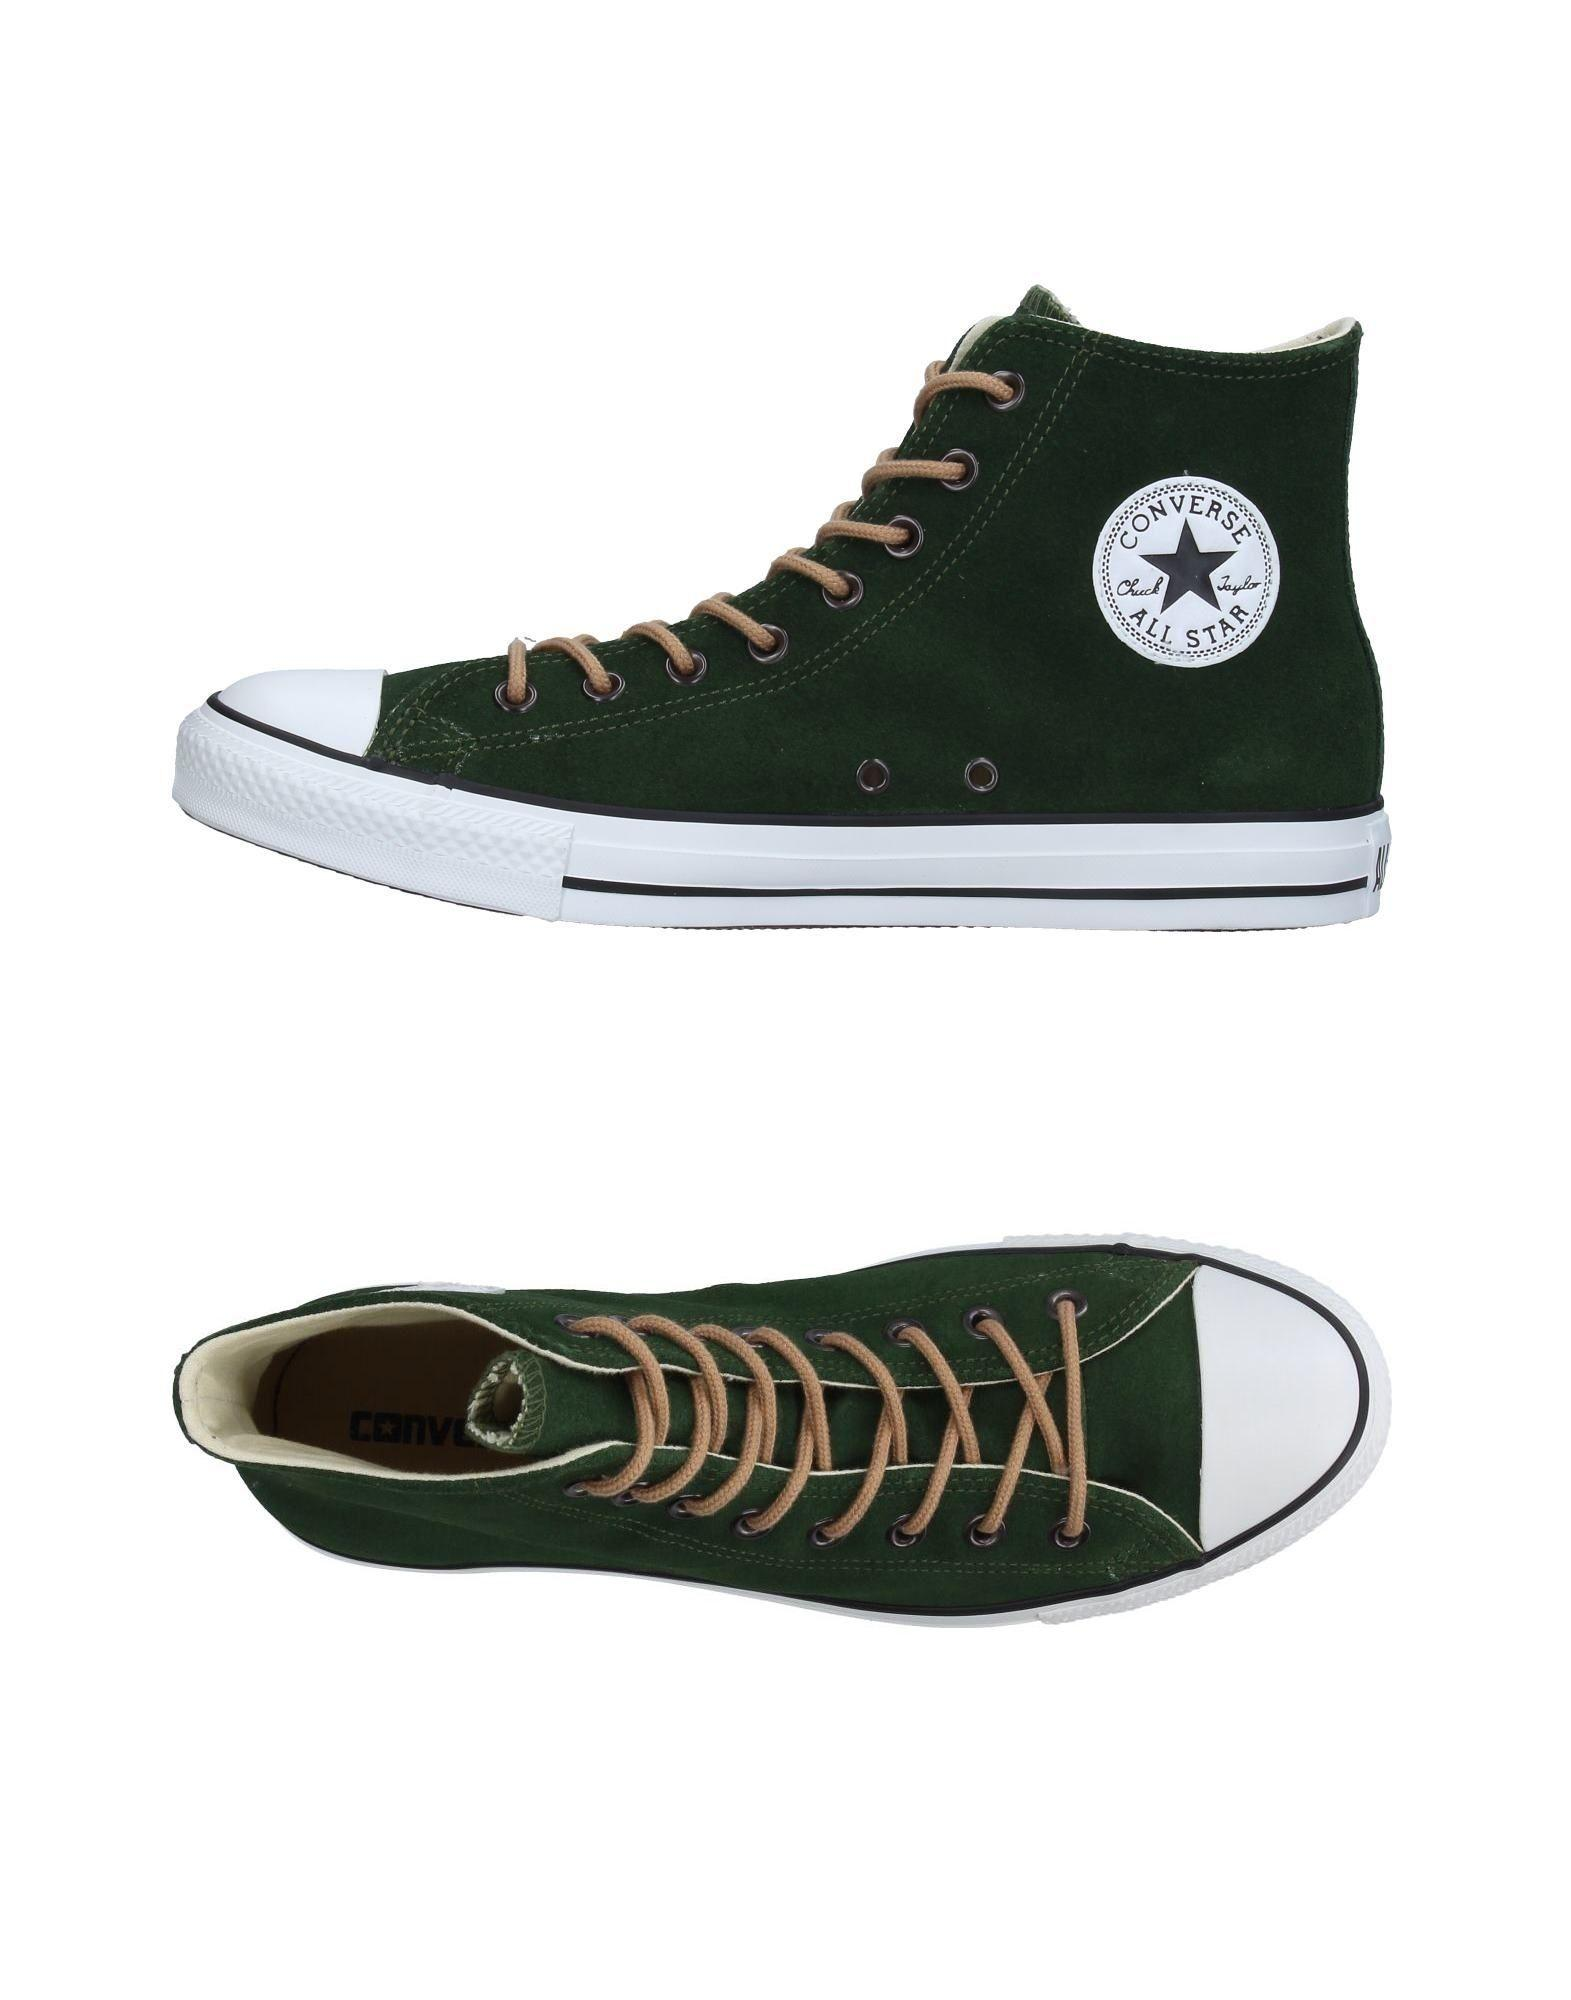 Lyst - Converse High-tops & Sneakers in Green for Men